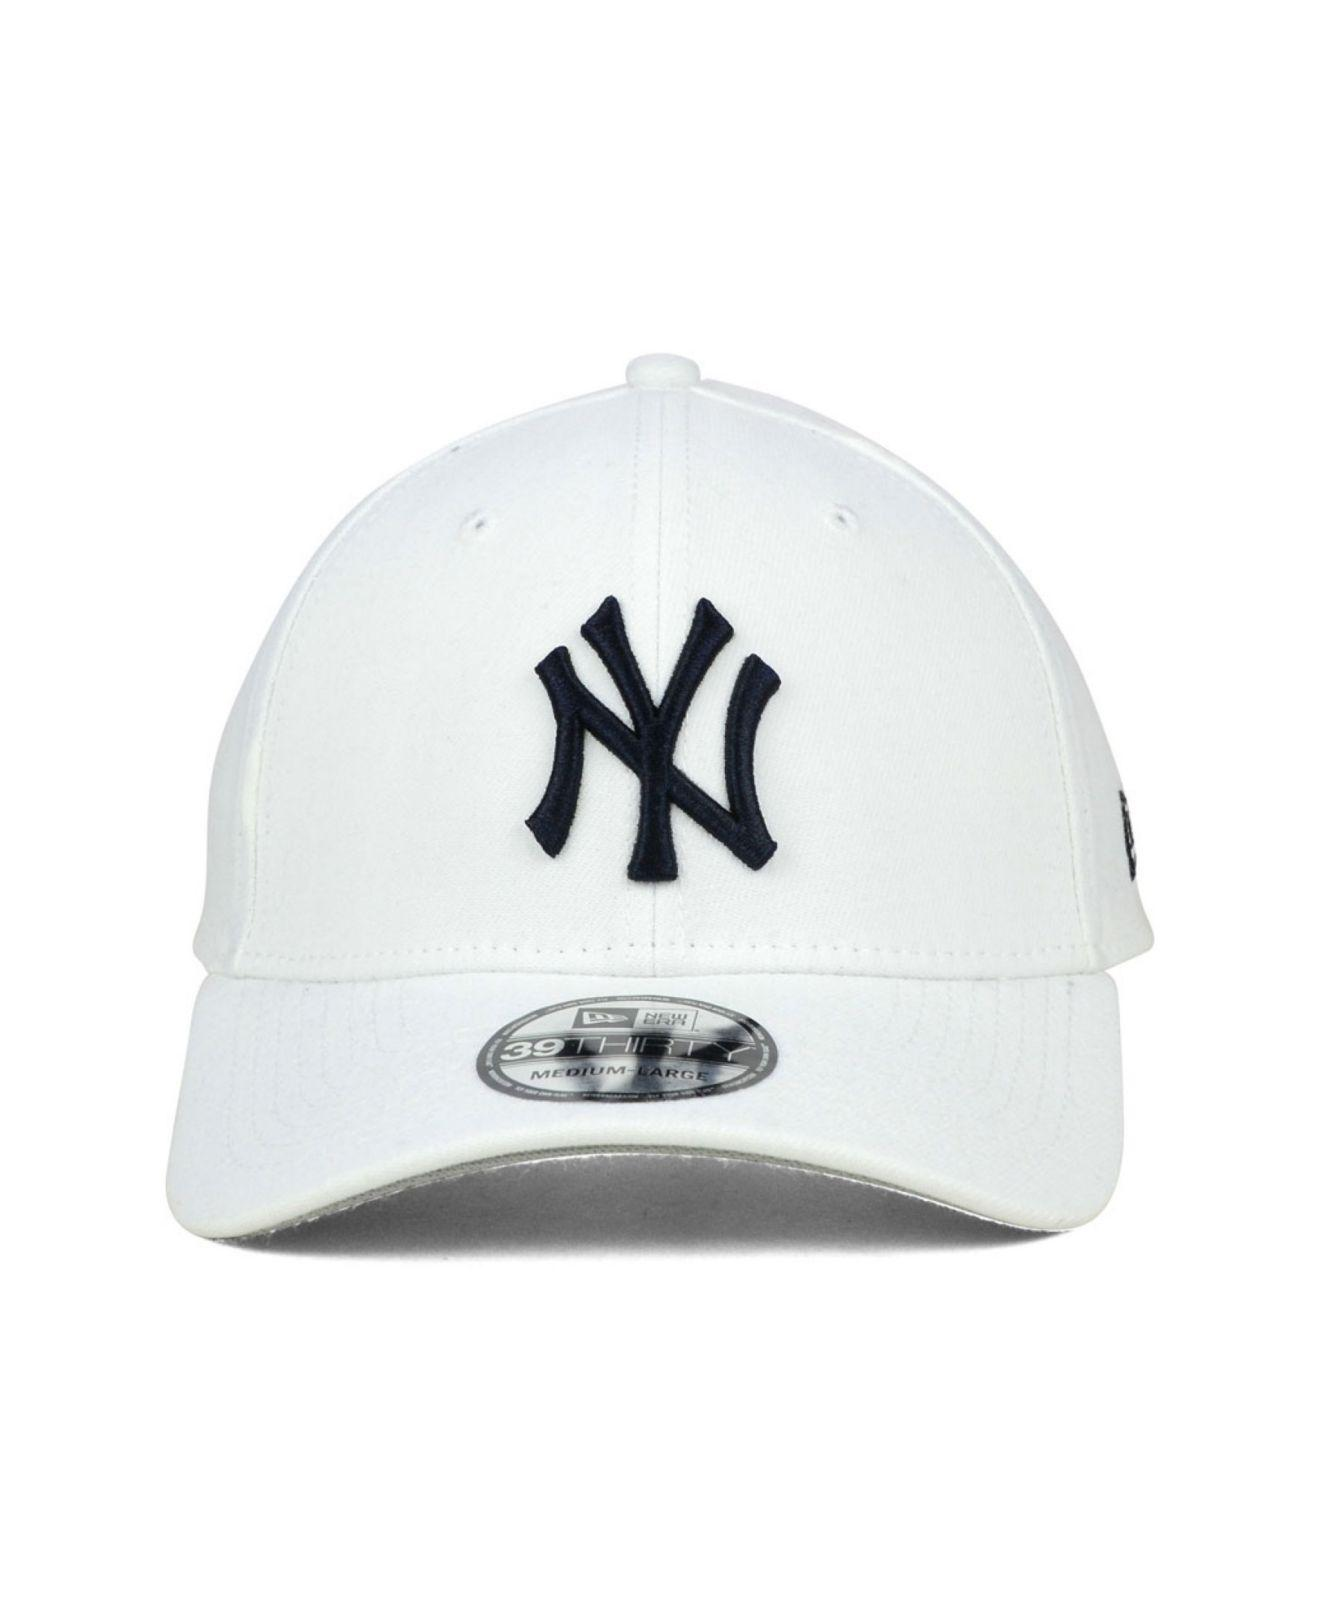 6a81c063c1de3 ... closeout lyst ktz new york yankees core classic 39thirty cap in white  for men f0519 6fb38